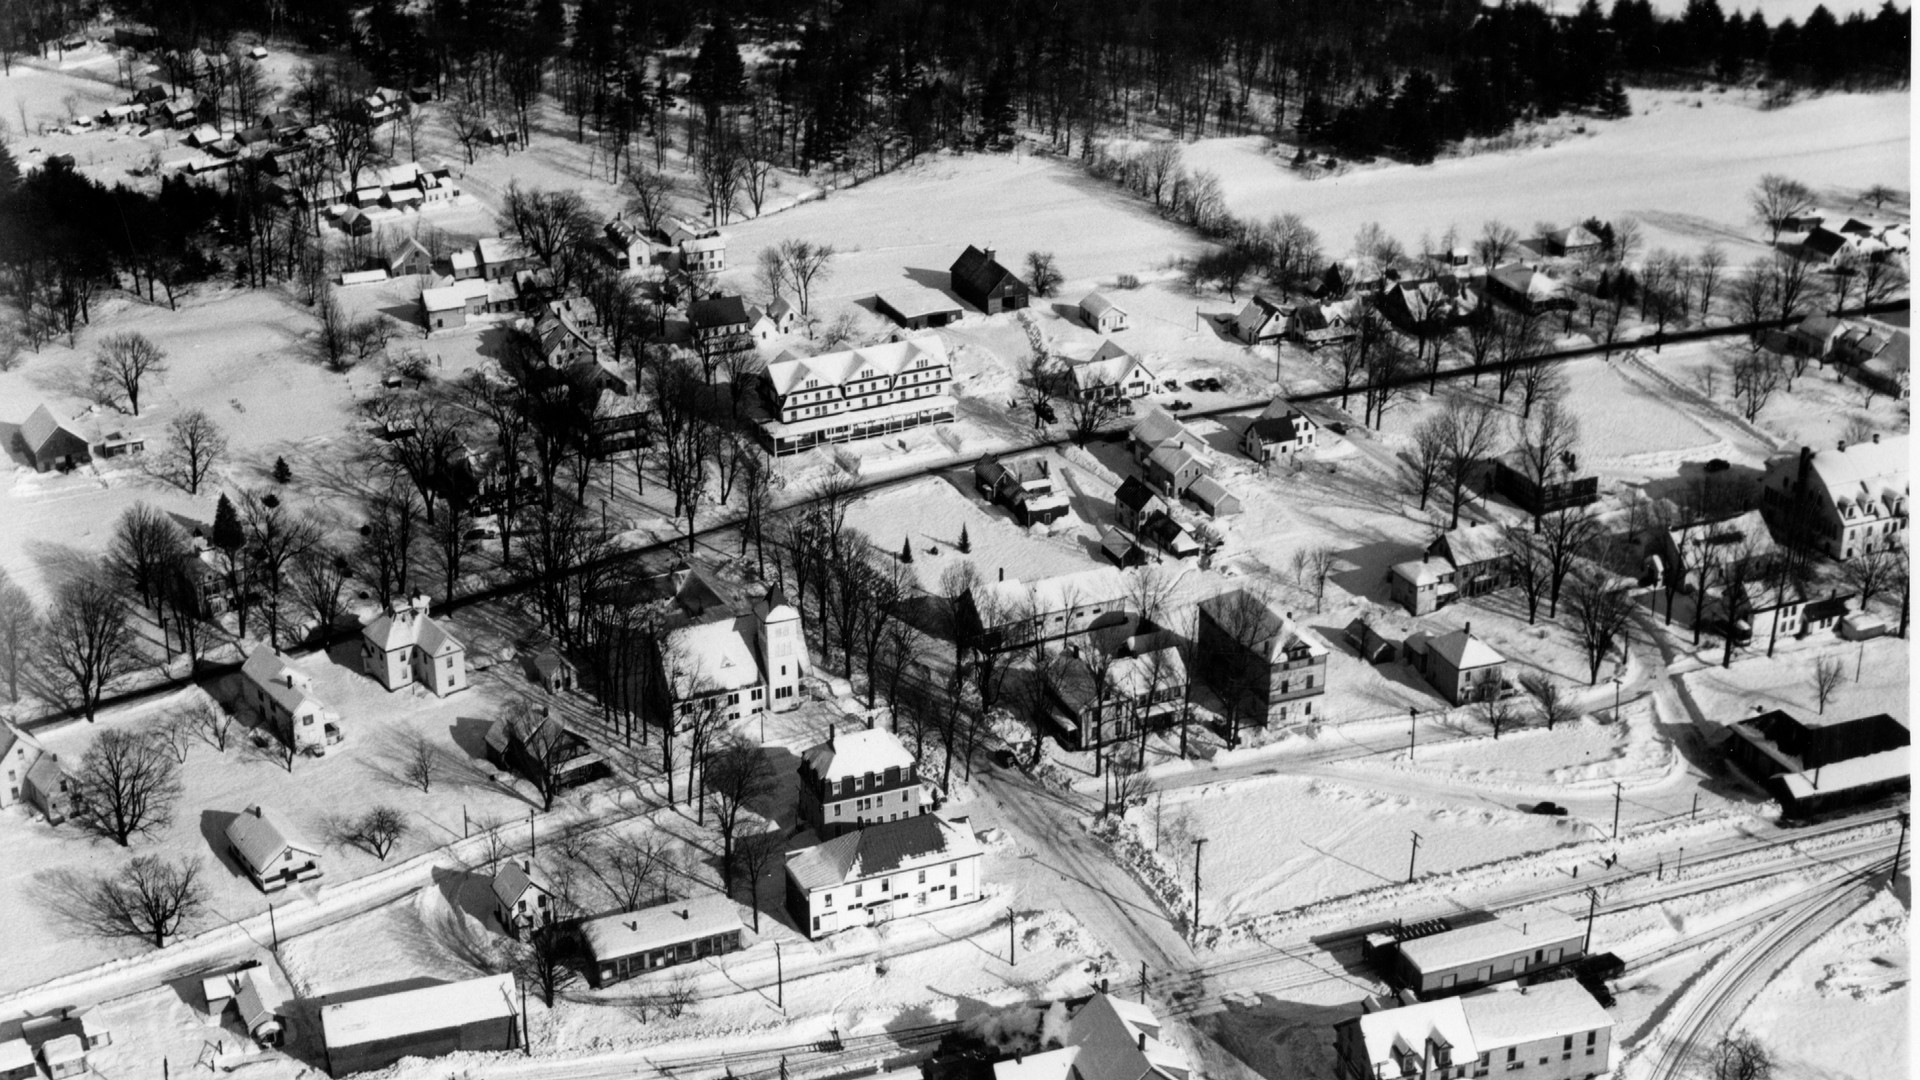 Village Area - Town Center -RR Station and school at far right side - Garland House and Thurston's Store bottom center